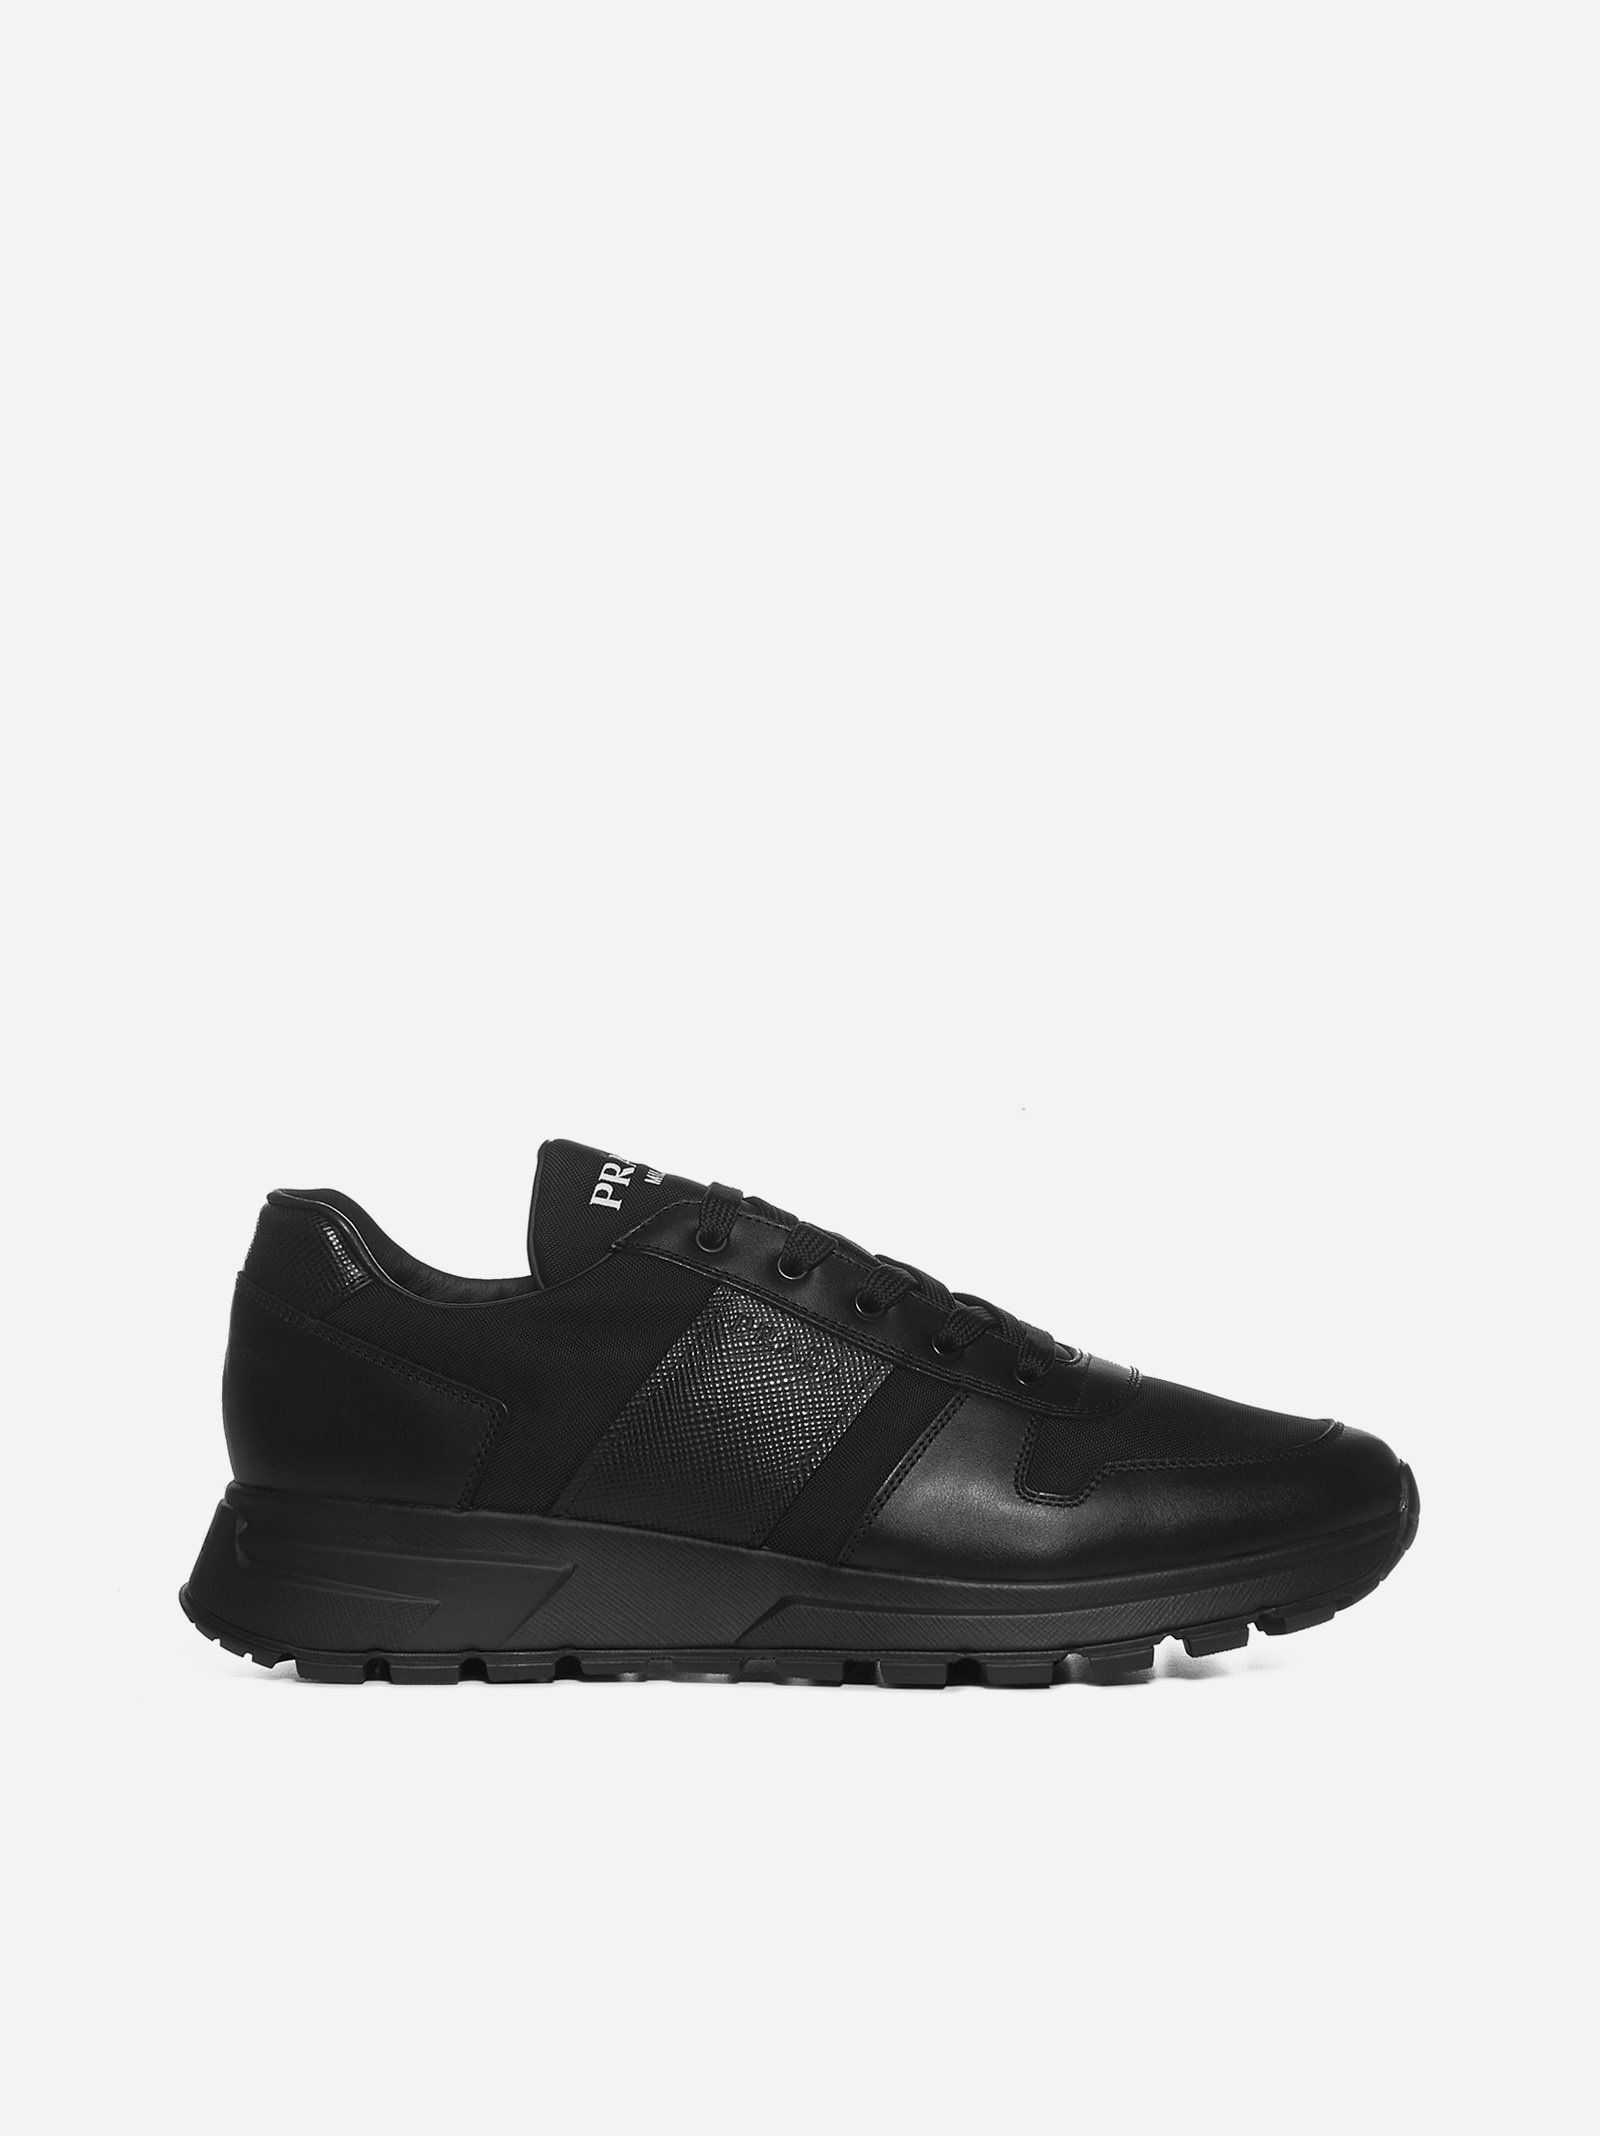 Prada Leathers PRAX 01 LEATHER AND MESH SNEAKERS